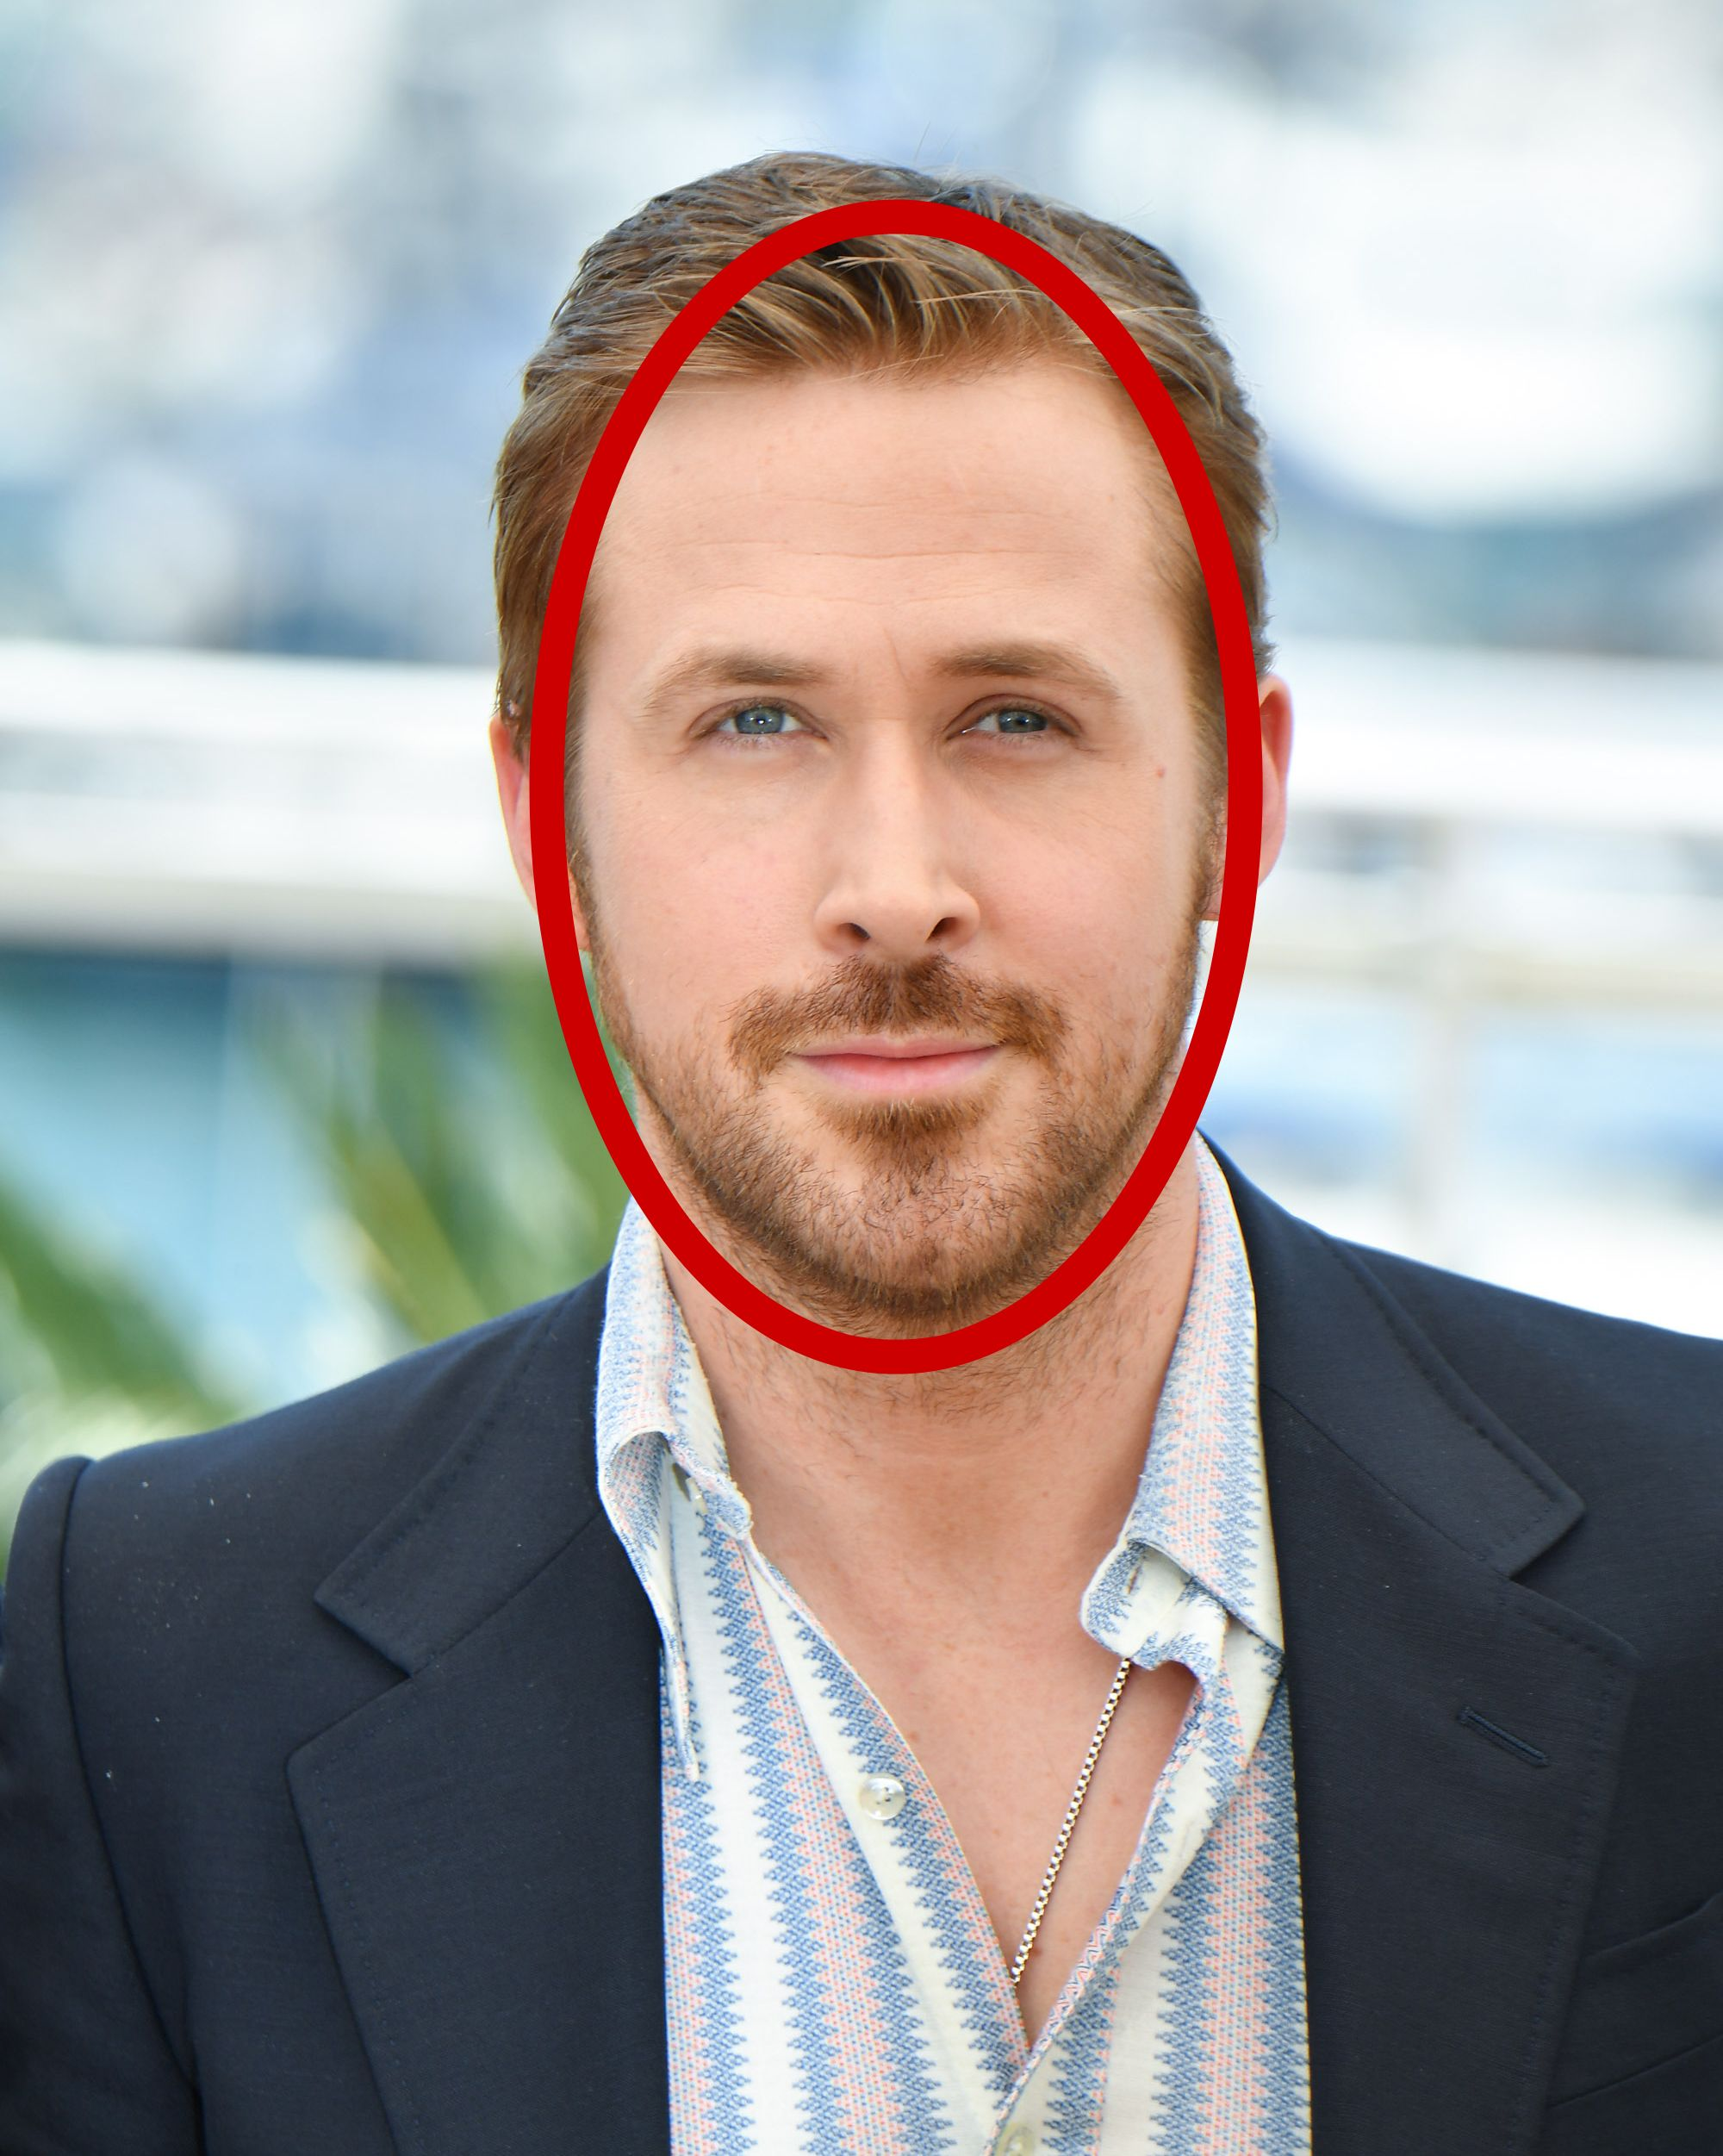 ryan gosling, ryan gosling oval face, man face oval, as is the oval face